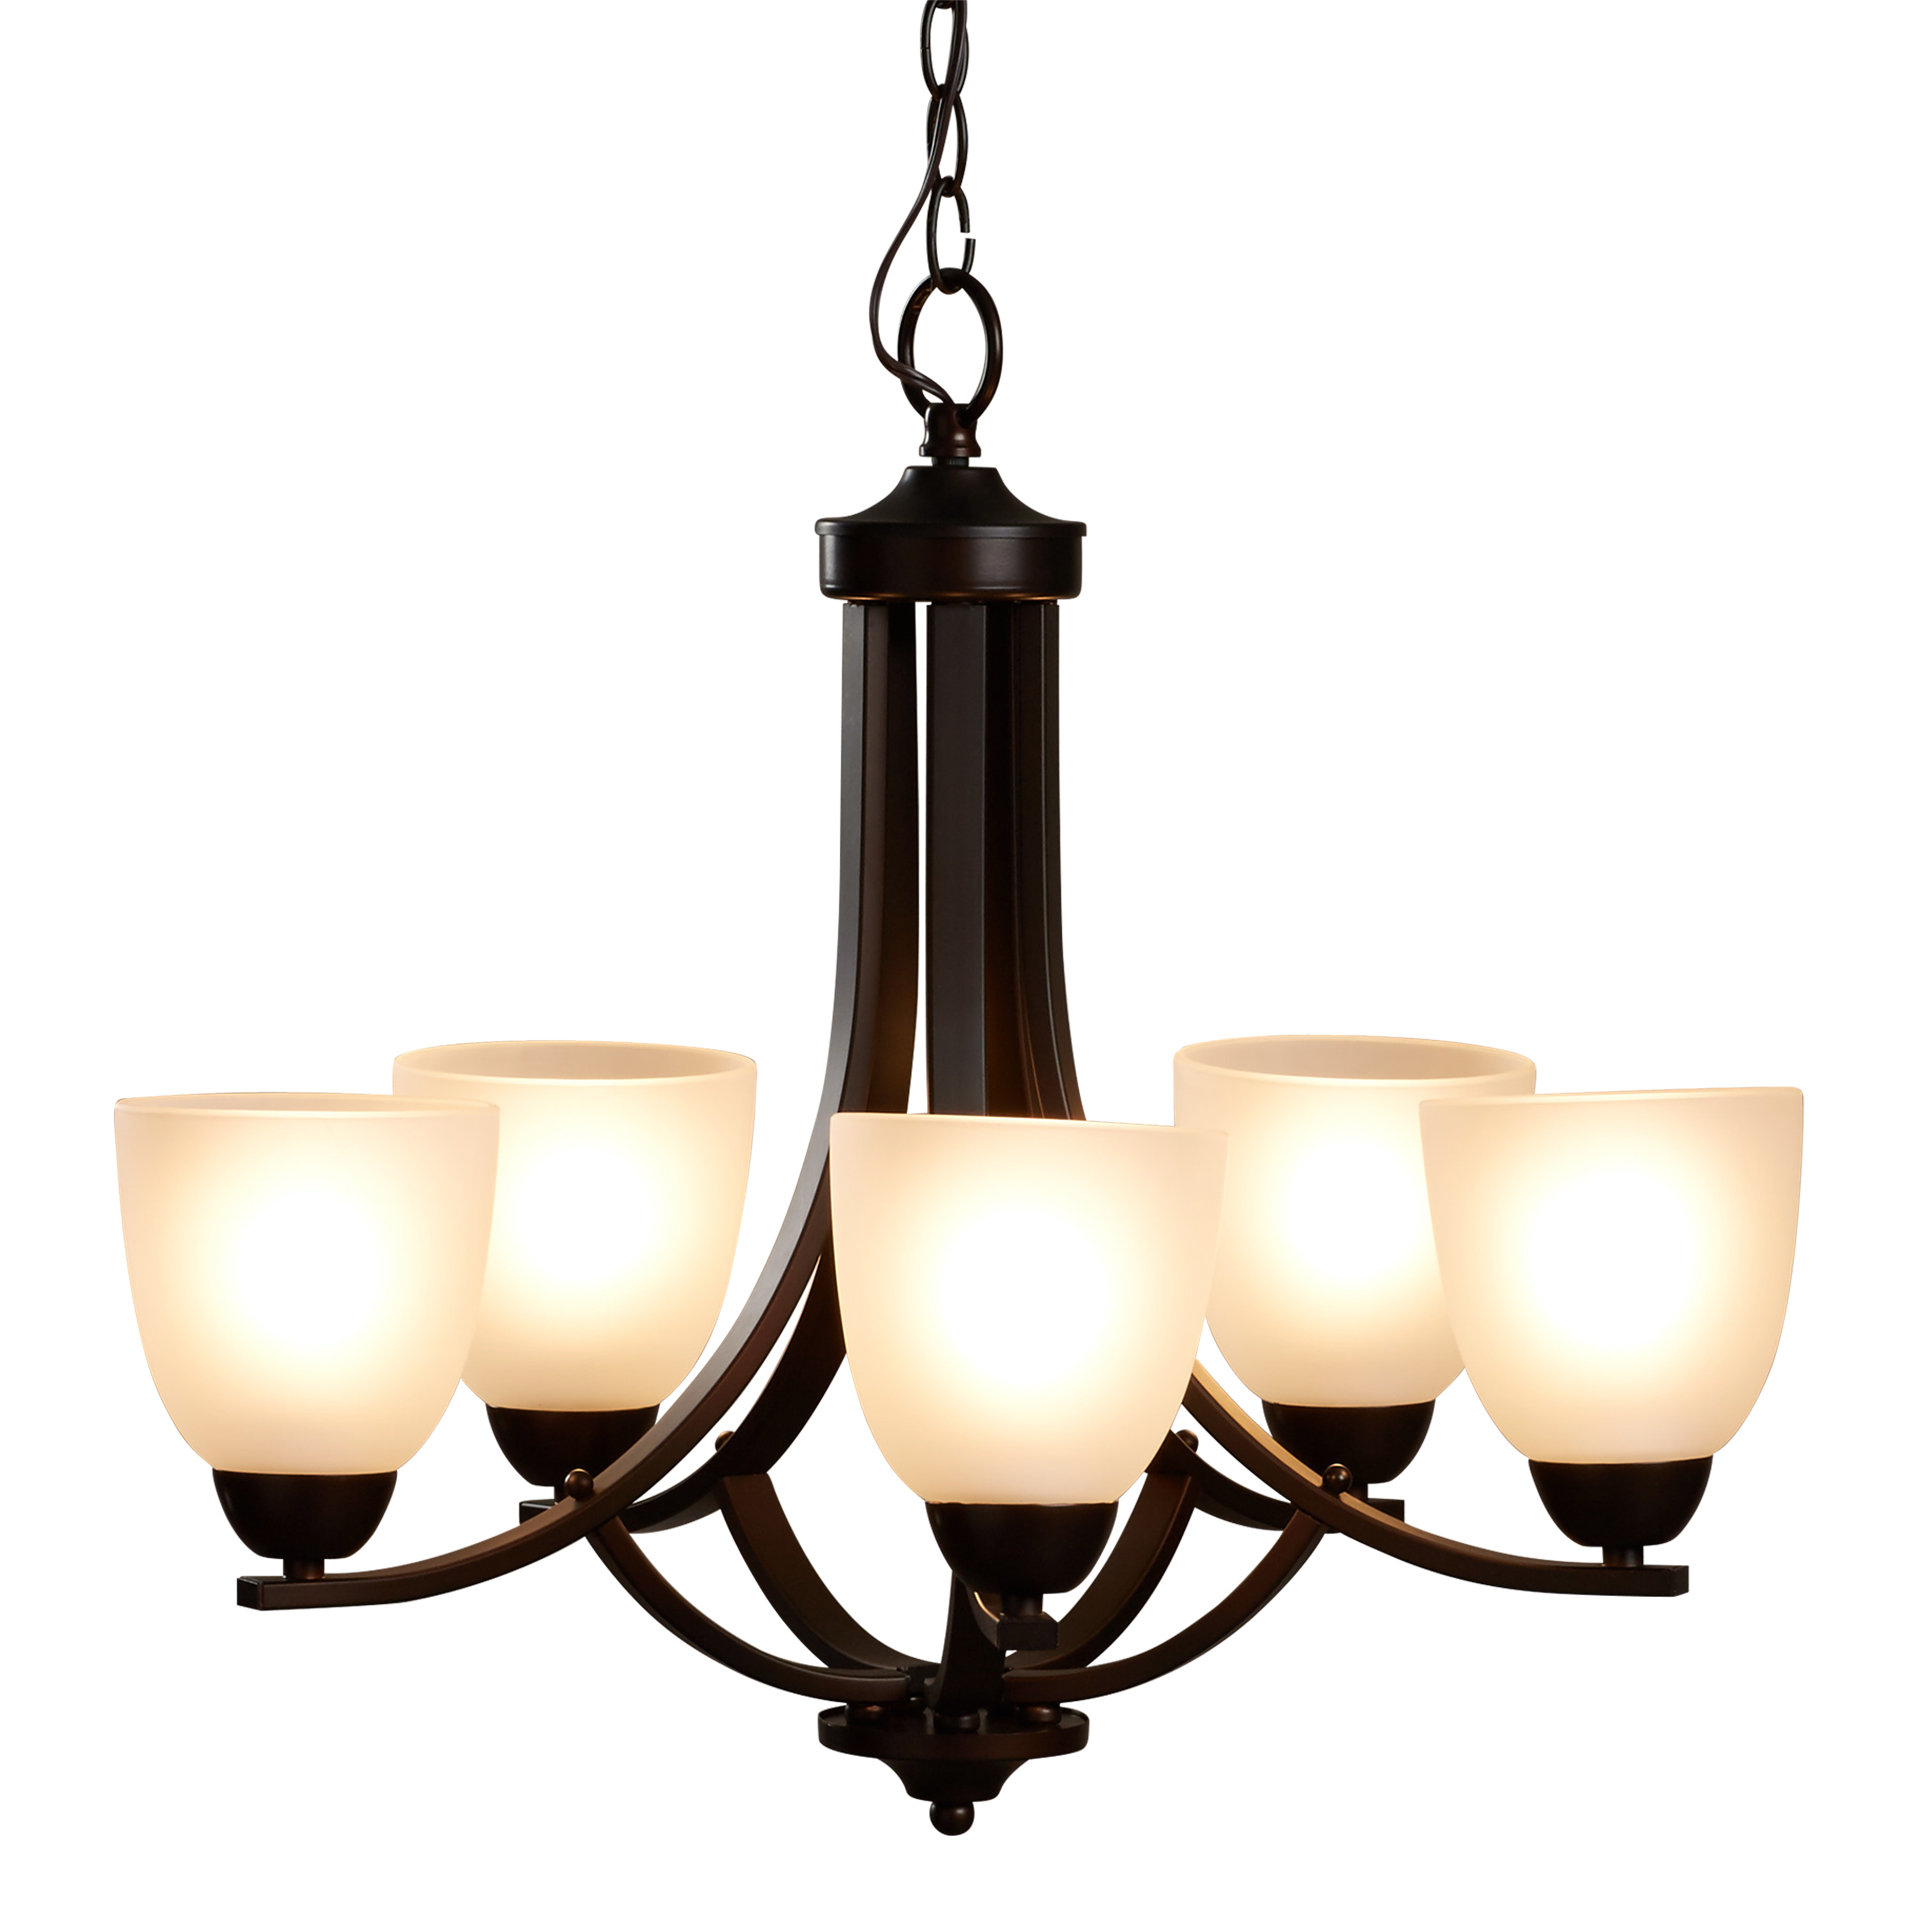 Gaines 5 Light Shaded Chandeliers With Regard To Newest Andover Mills Hayden 5 Light Shaded Chandelier (View 15 of 25)